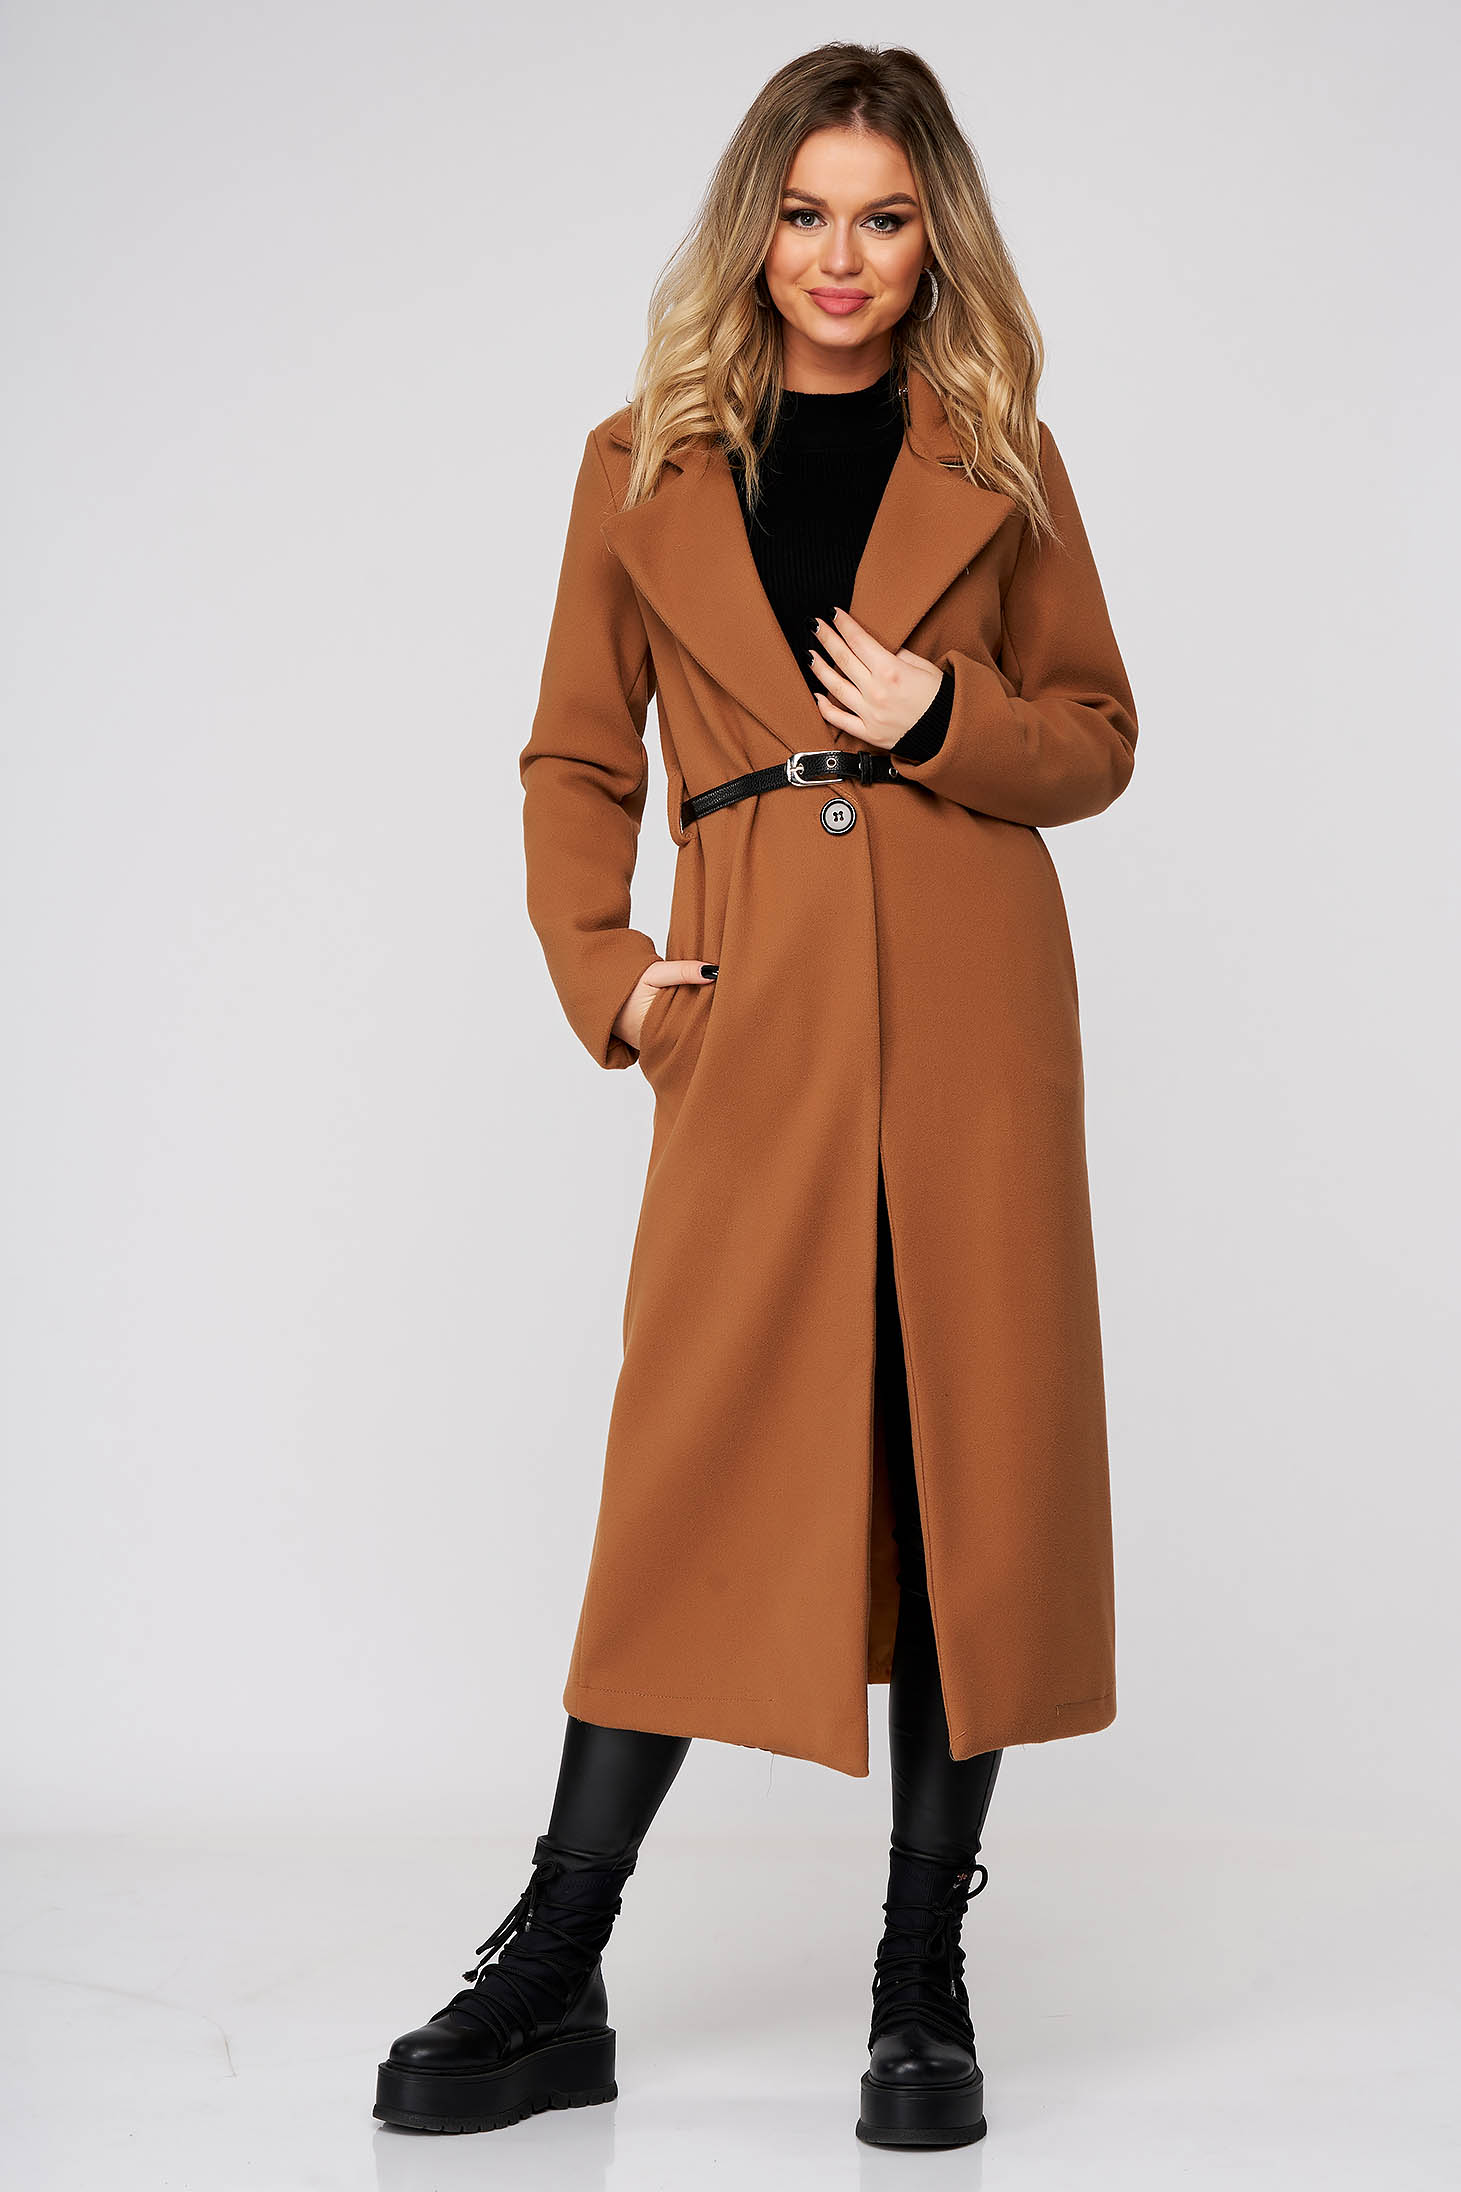 Brown coat long straight cloth with pockets accessorized with belt